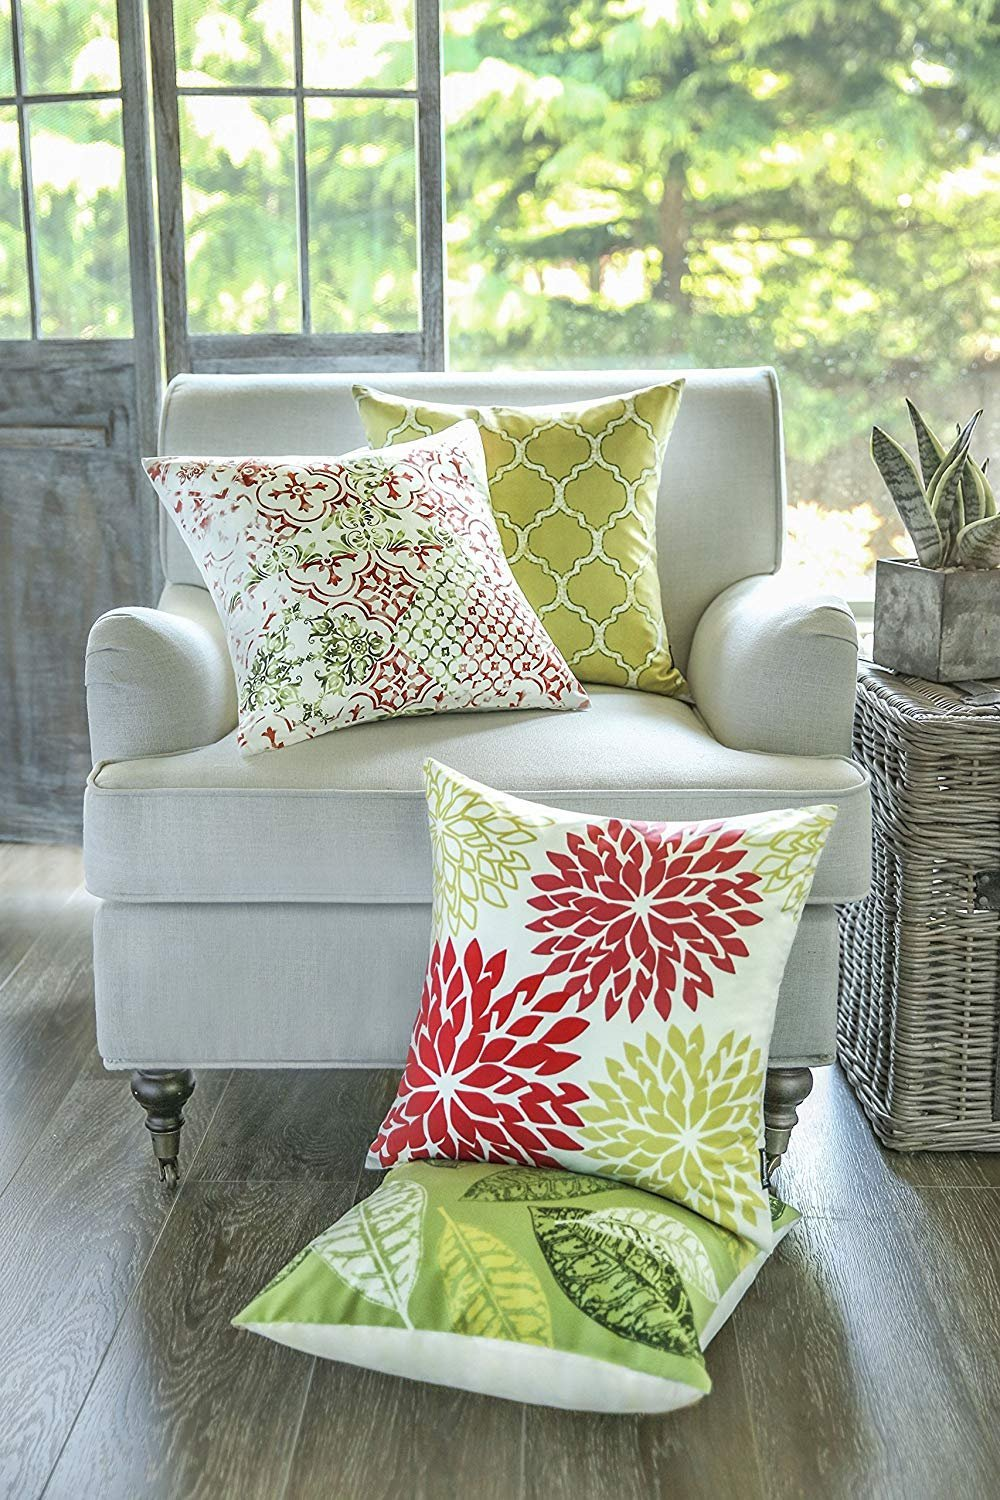 Phantoscope Set of 4 New Living Yellow and Green Decorative Throw Pillow Case